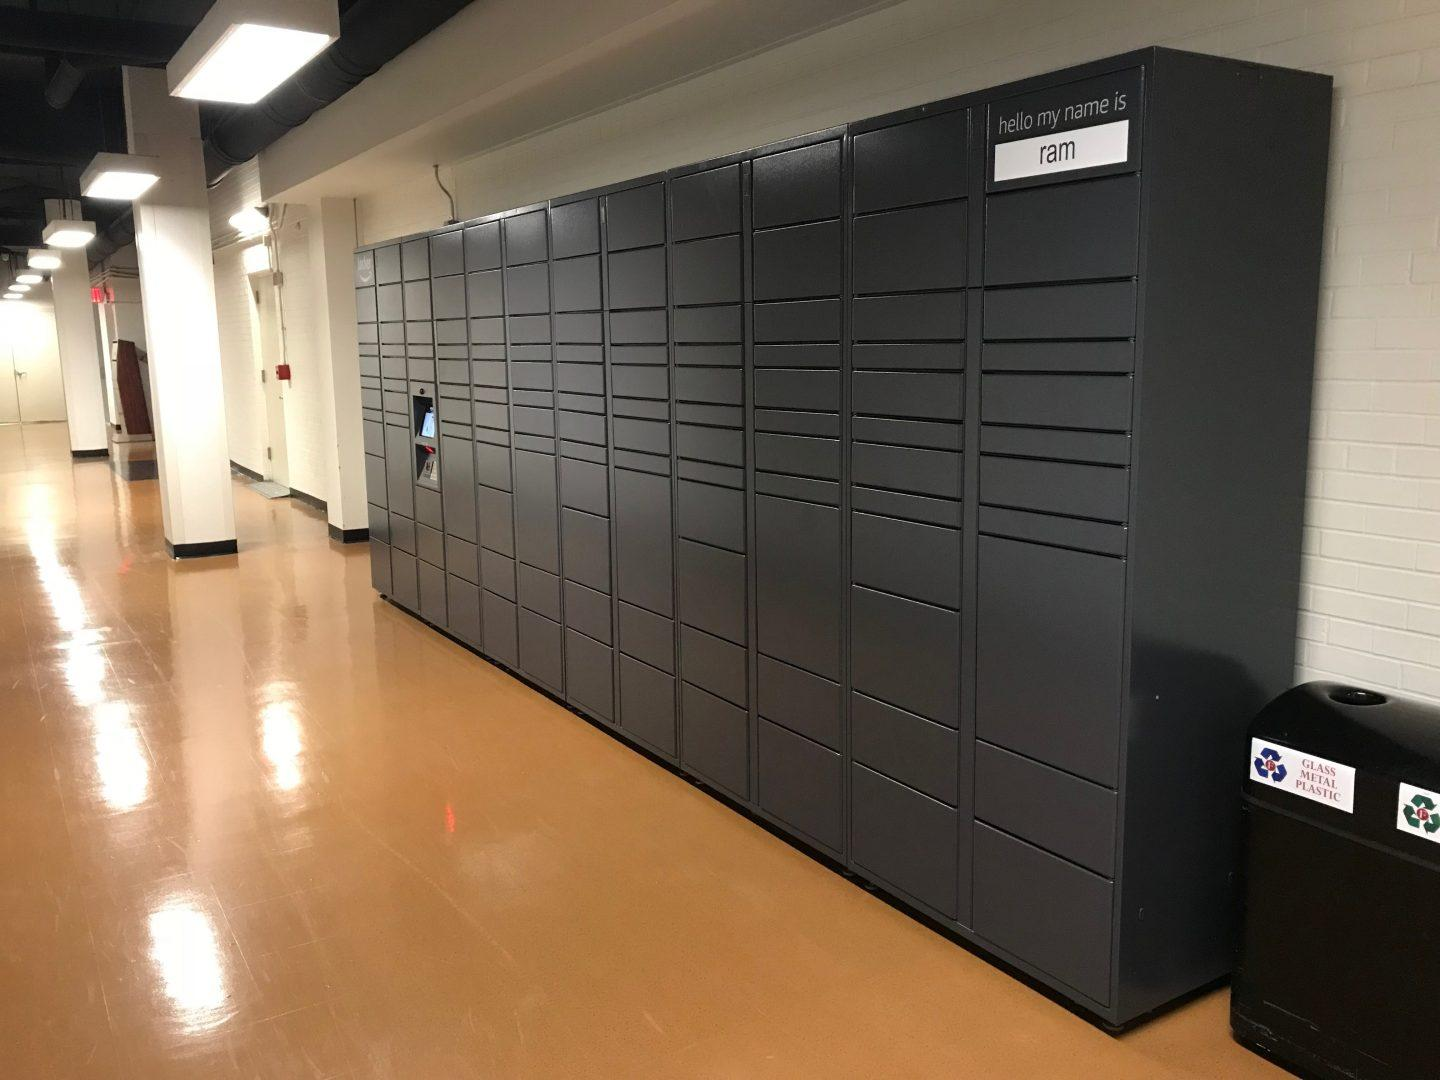 Amazon Lockers Upgrade Fordham's Package Delivery Services